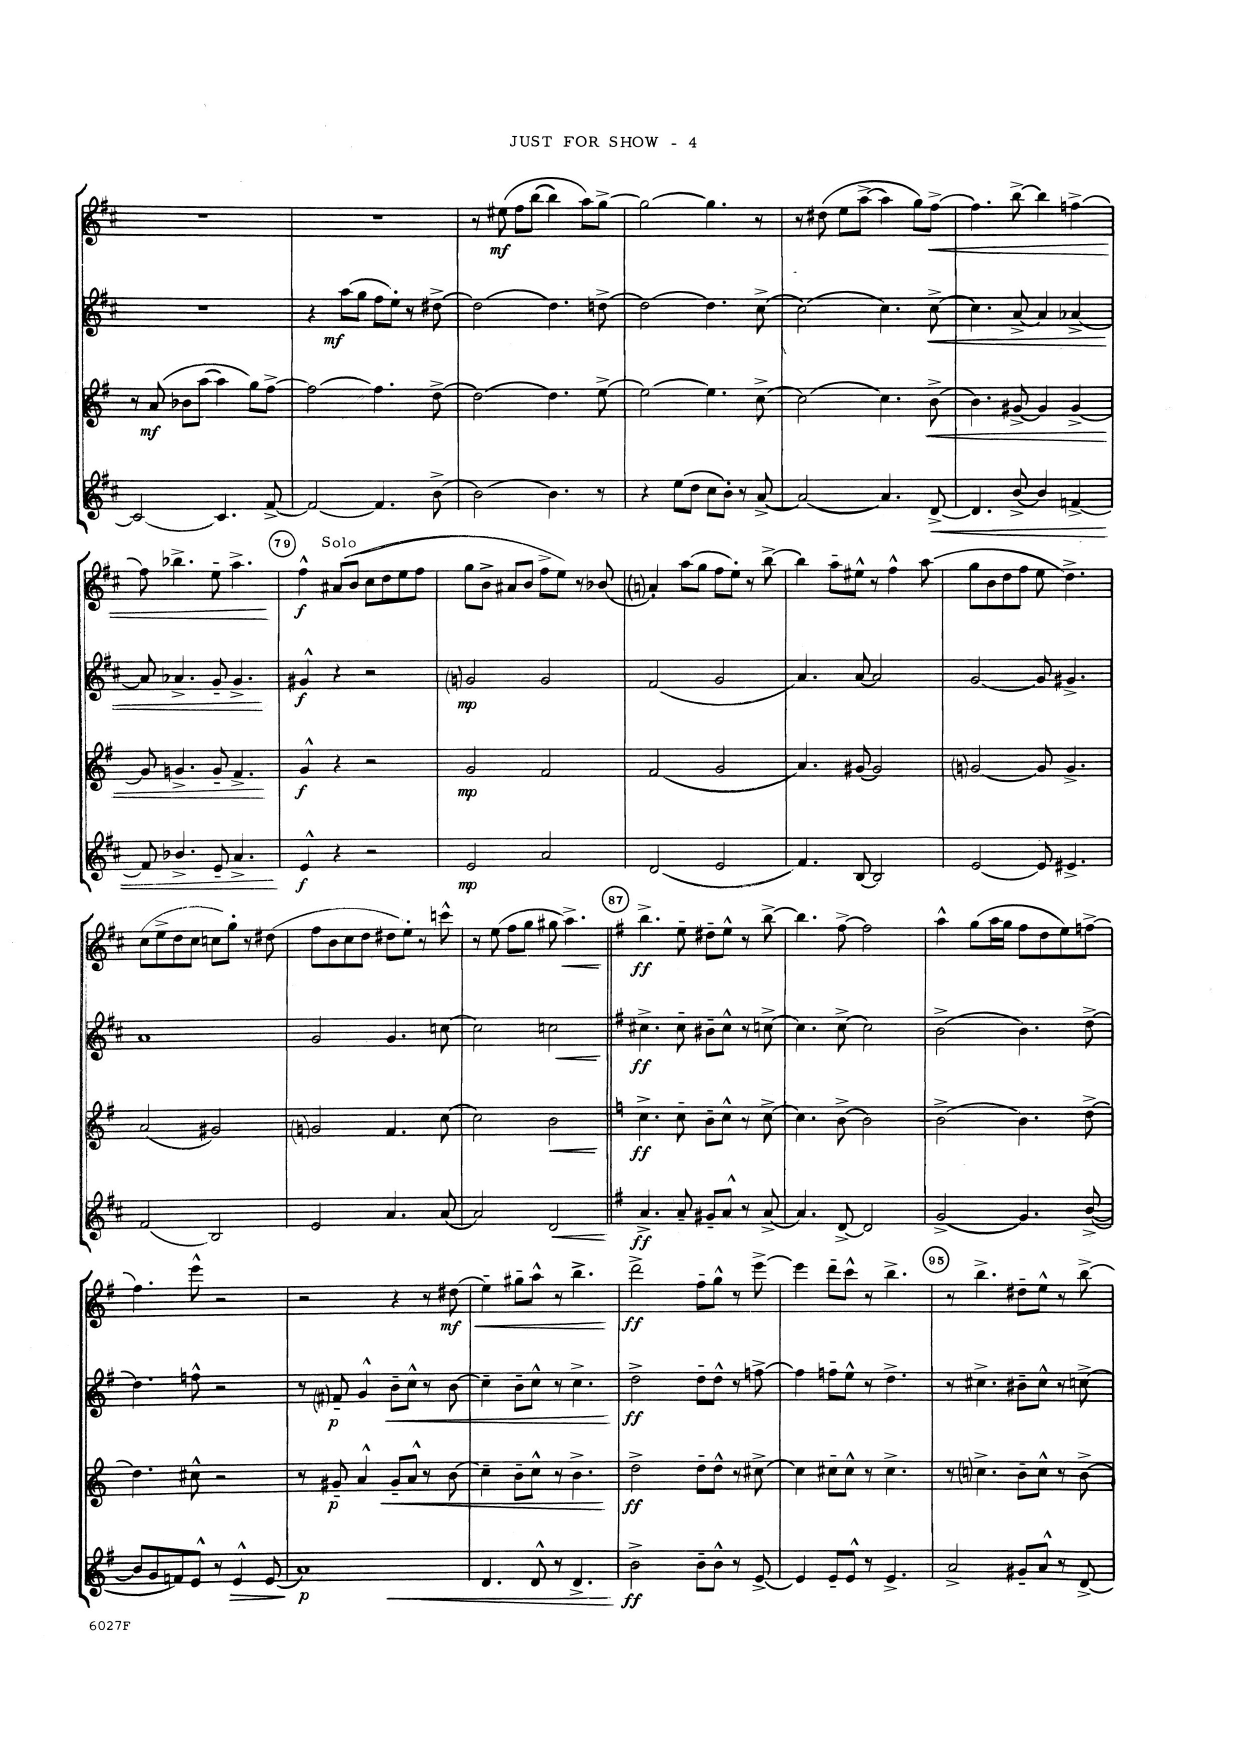 Just For Show (COMPLETE) sheet music for saxophone quartet by Lennie Niehaus. Score Image Preview.